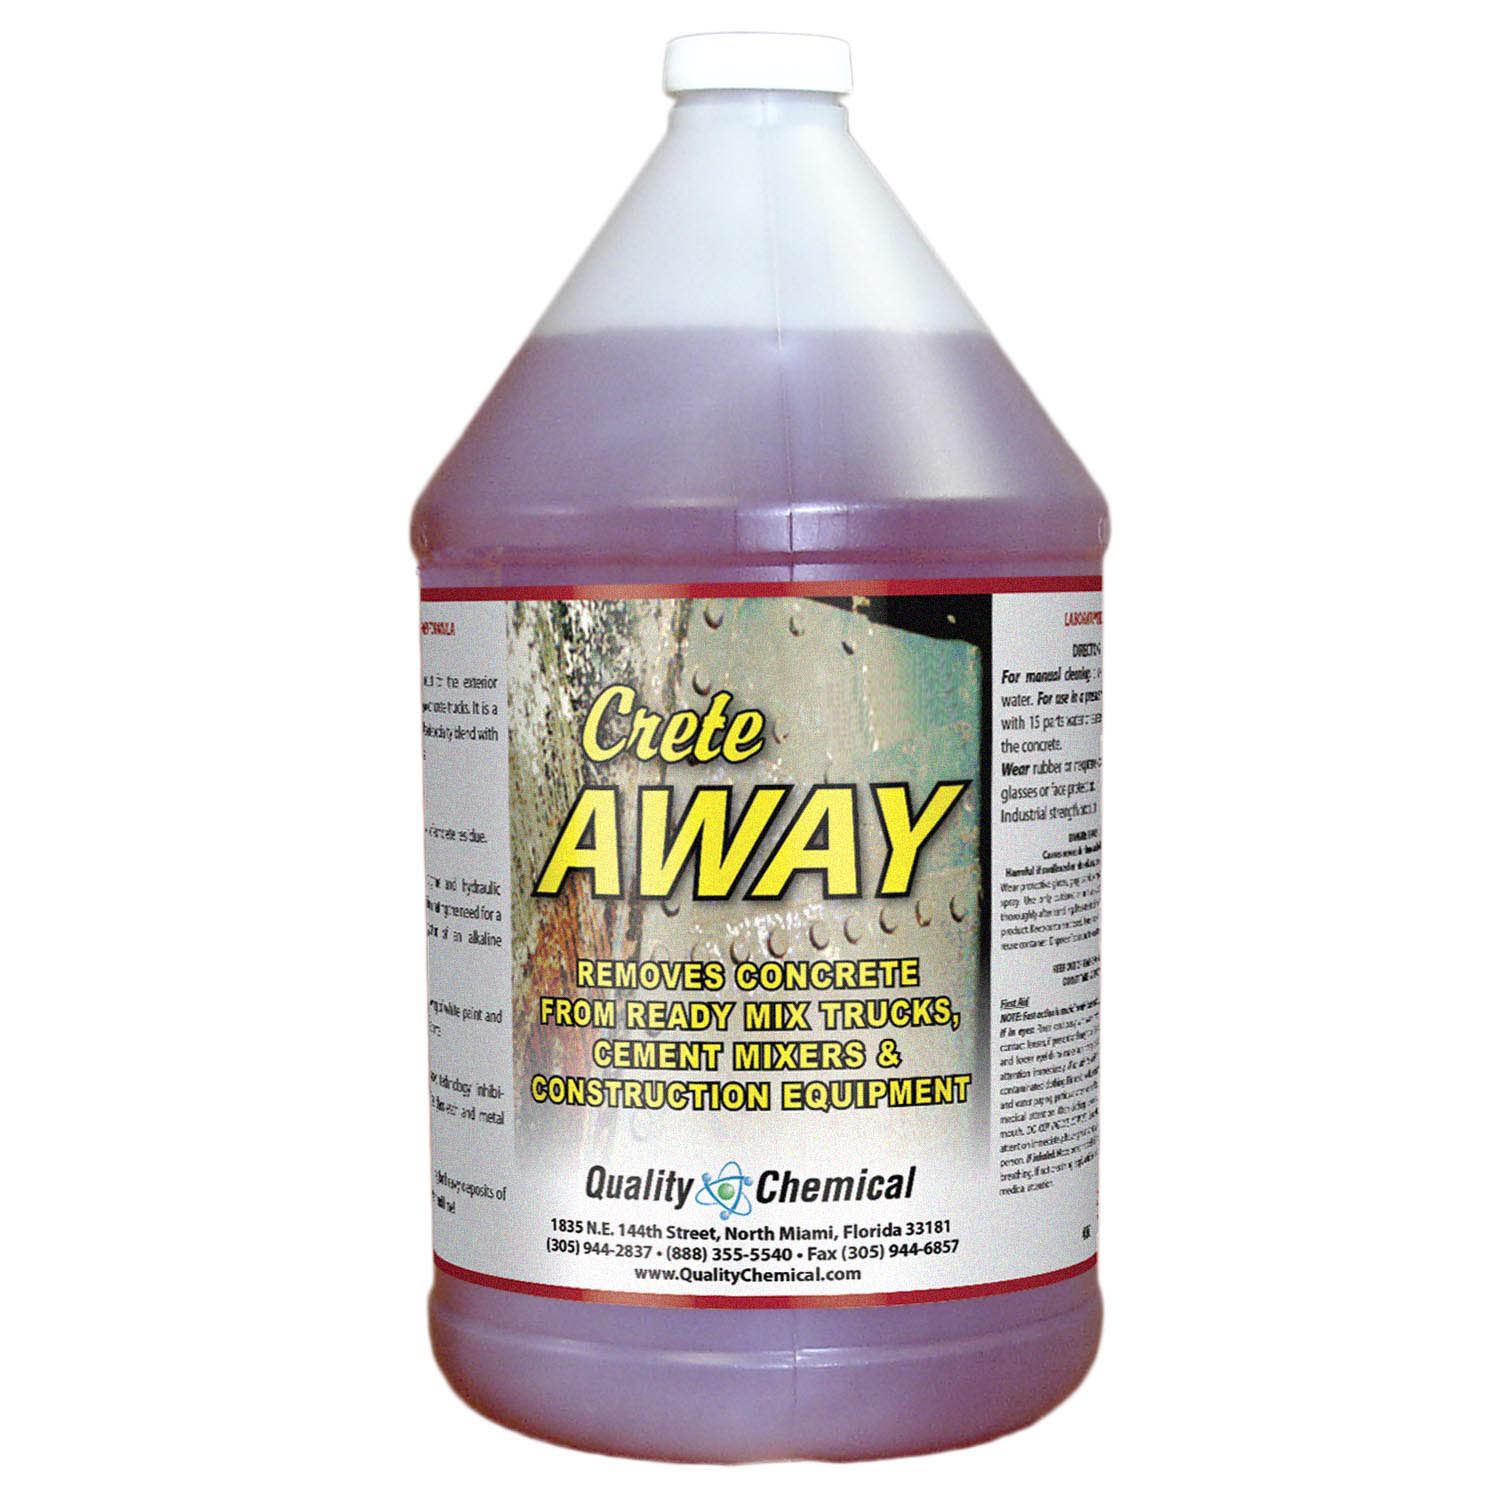 Crete Away Concrete Remover